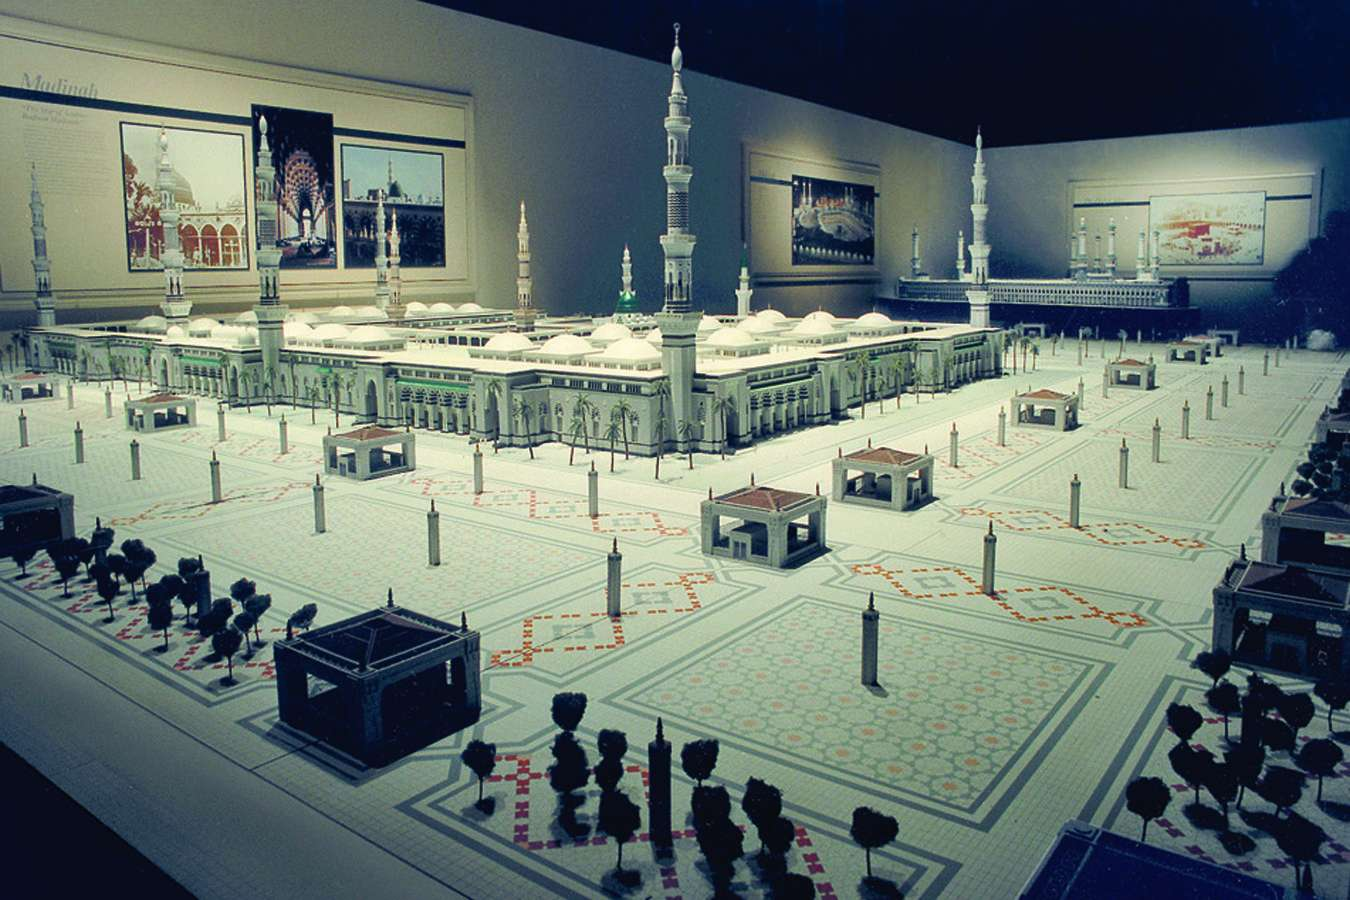 ksa medina : ISLAM: Model of the Mosque at Medina – Over 140 Architectural Models in Exhibit